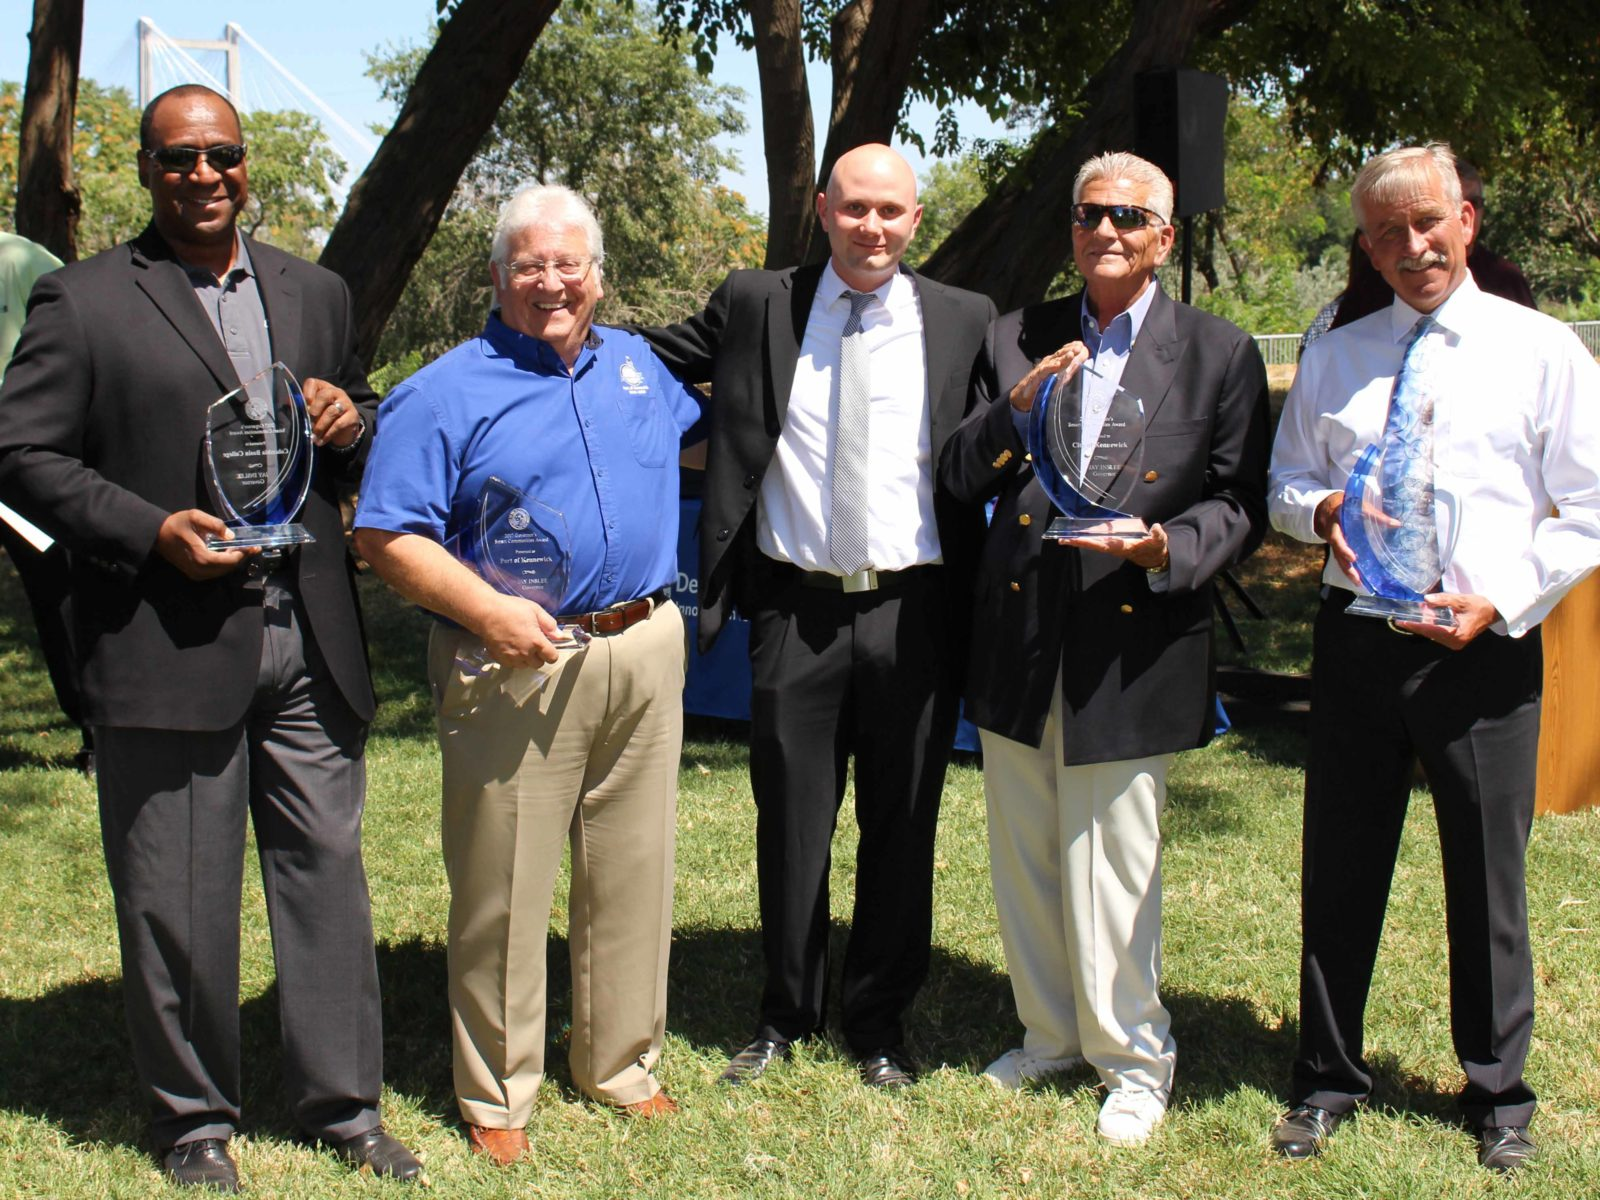 City, County, Port, and College reps receive revitalization award.